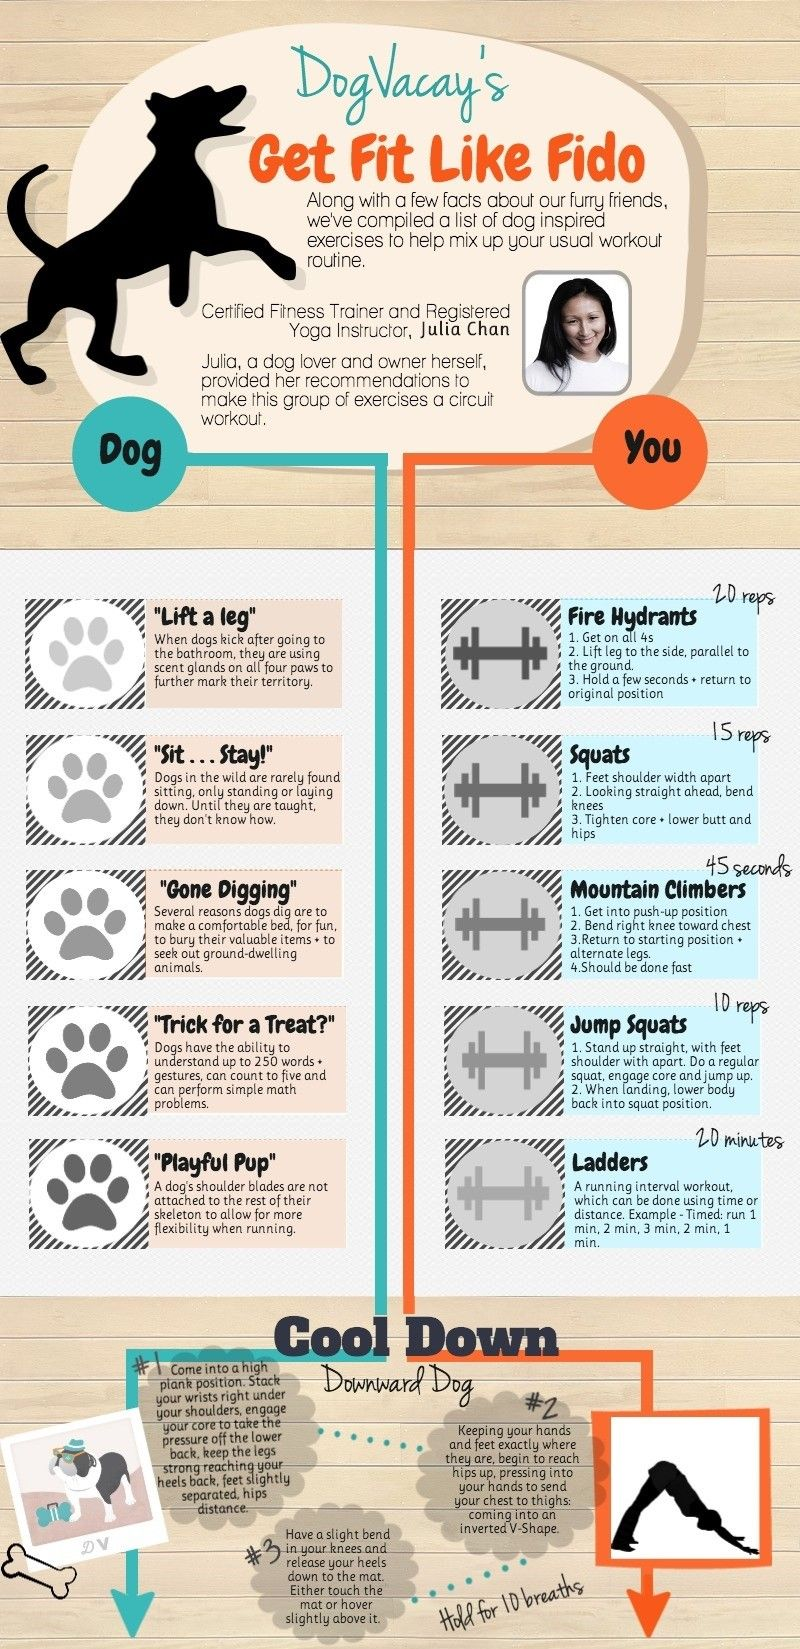 Exercise dog and yourself